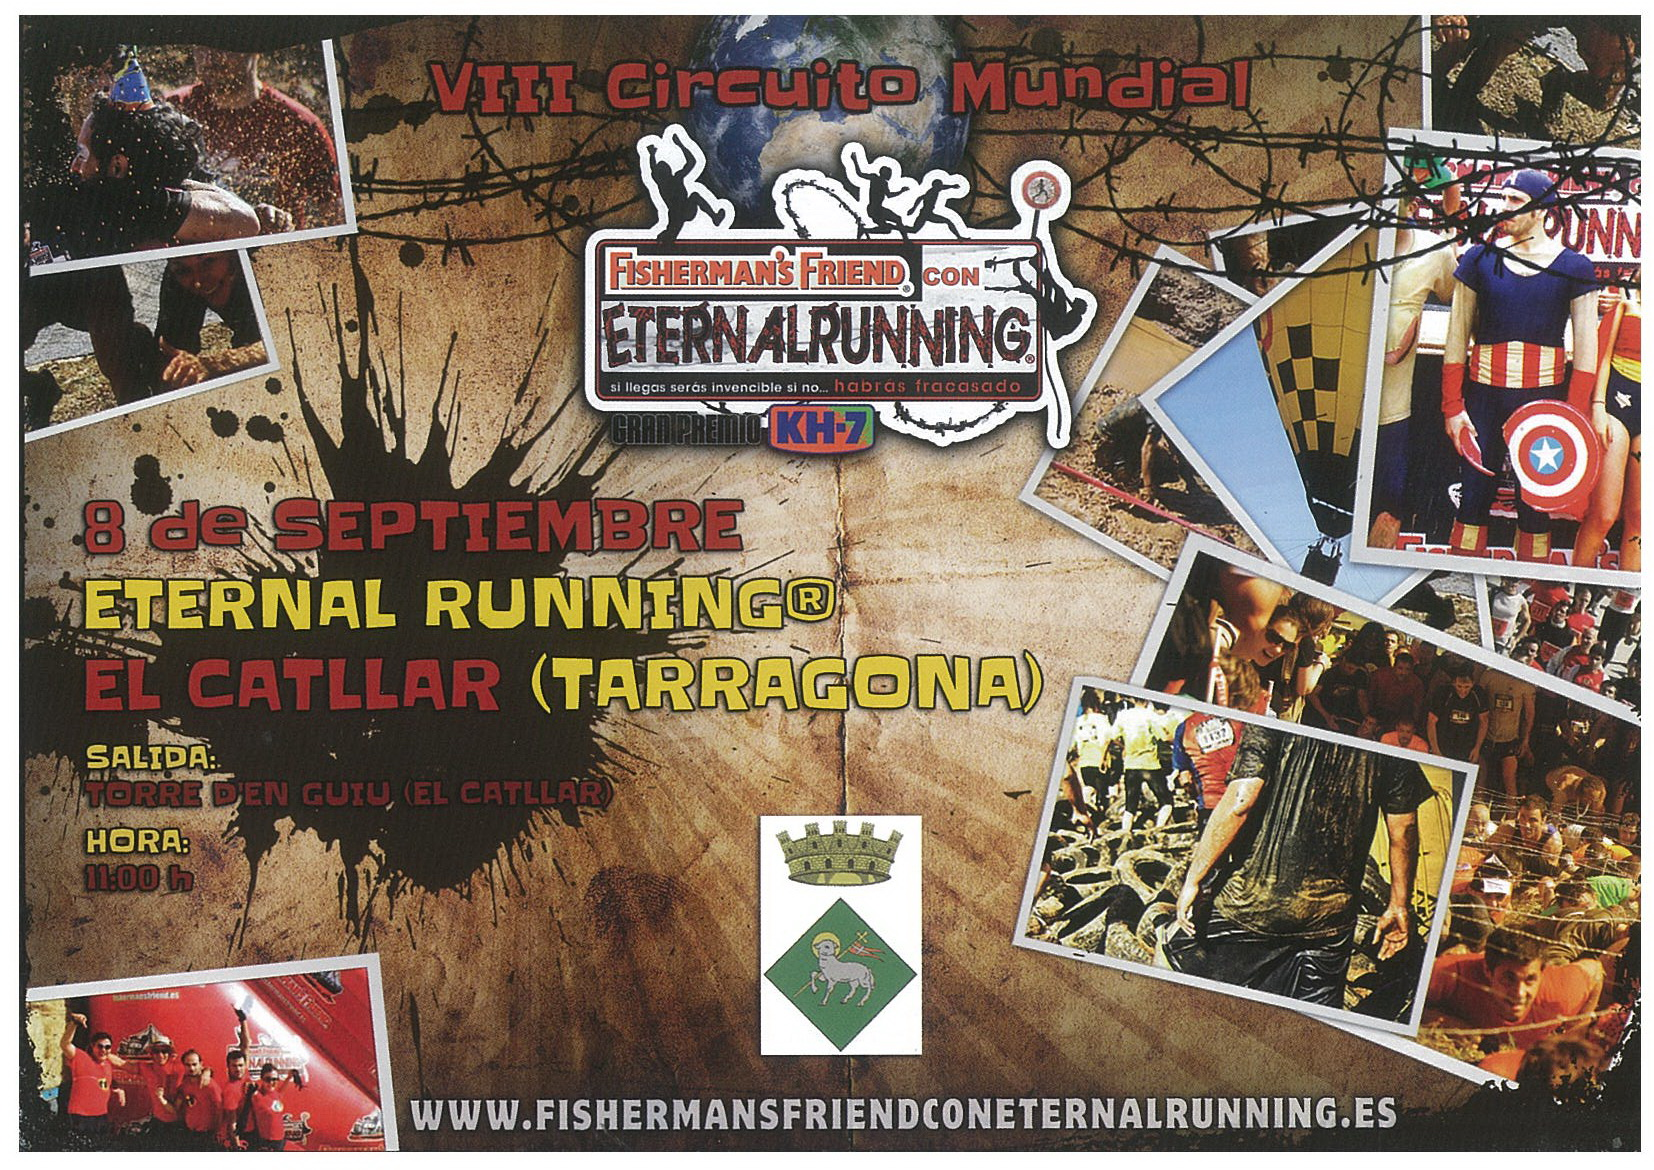 ETERNAL RUNNING 2013